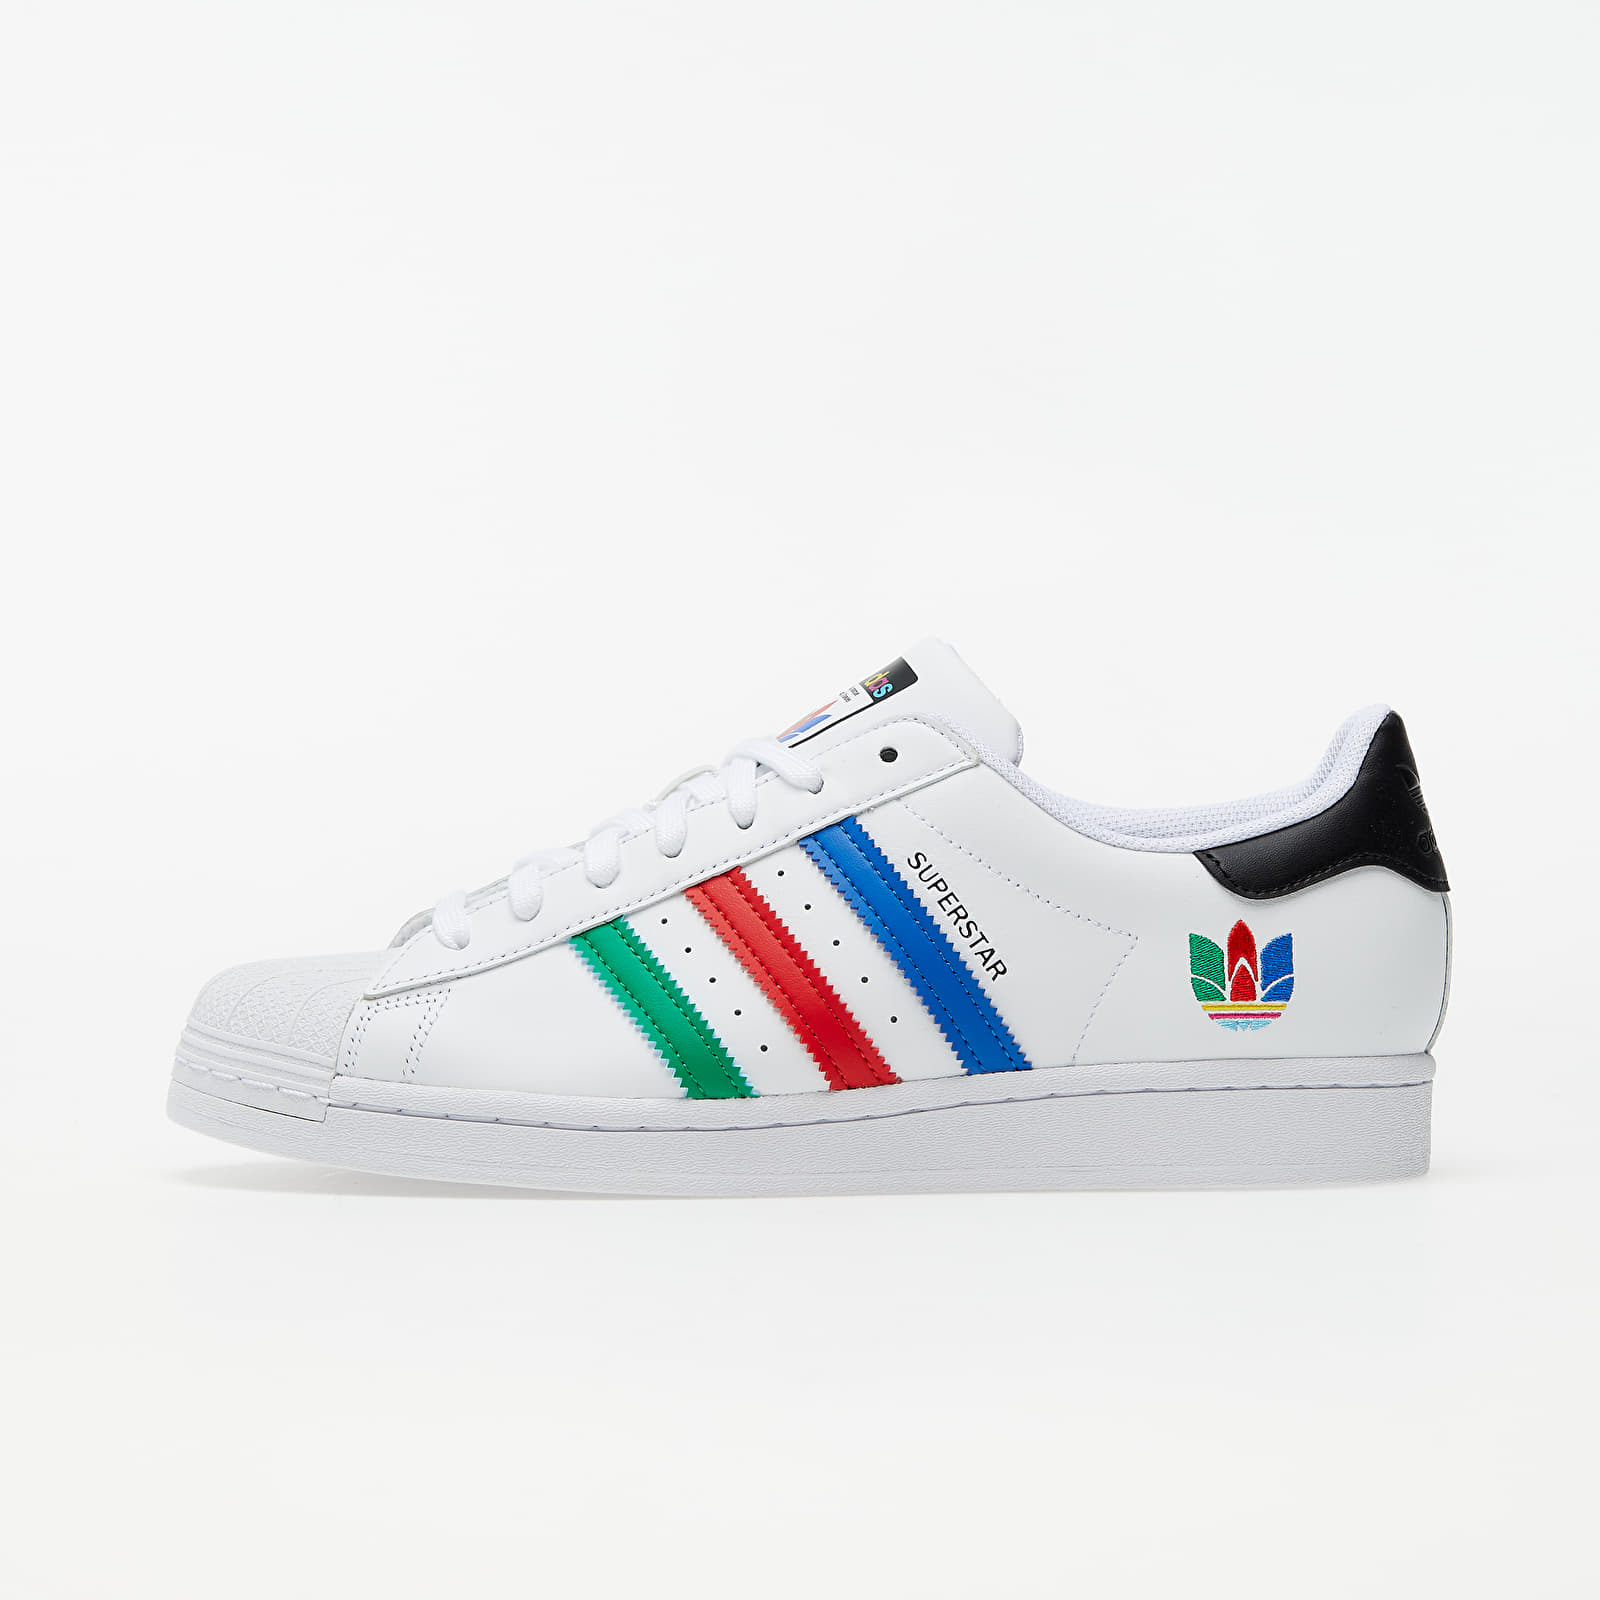 adidas Superstar Ftw White/ Green/ Core Black EUR 43 1/3